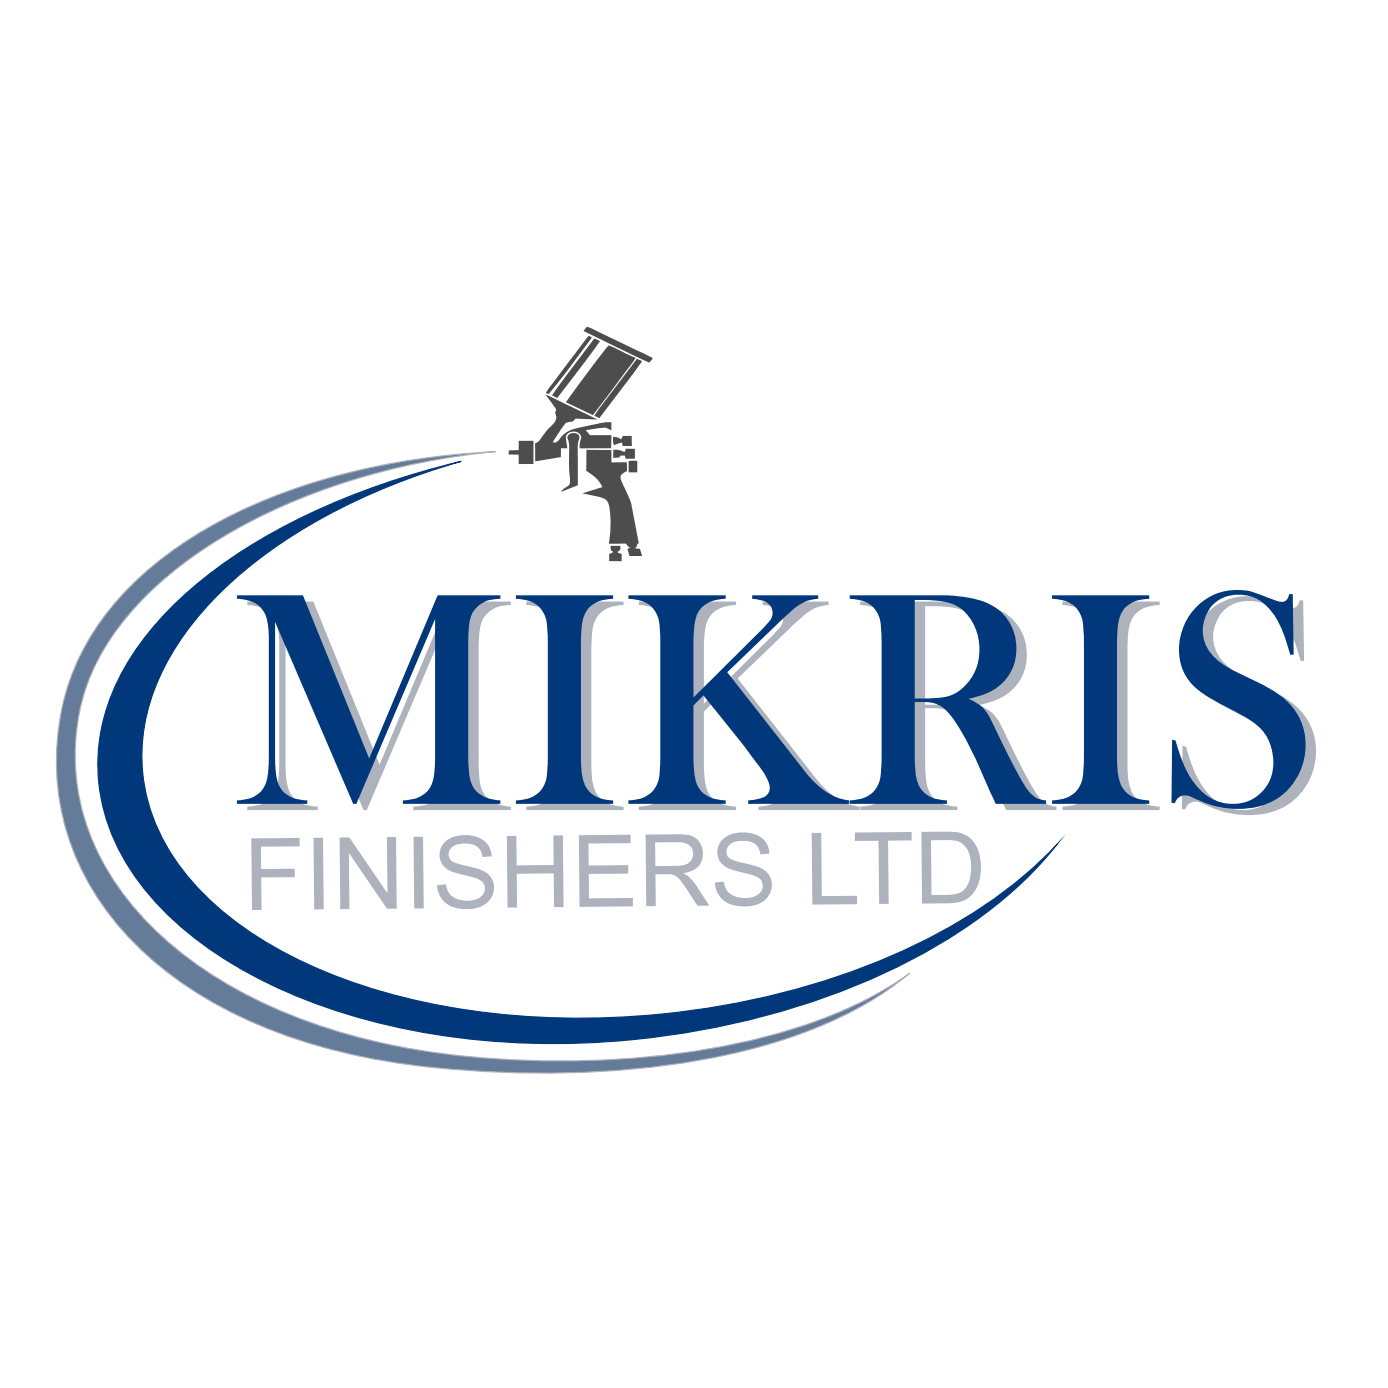 Mikris Finishers Ltd - Stonehouse, Gloucestershire GL10 3RD - 01453 763873 | ShowMeLocal.com